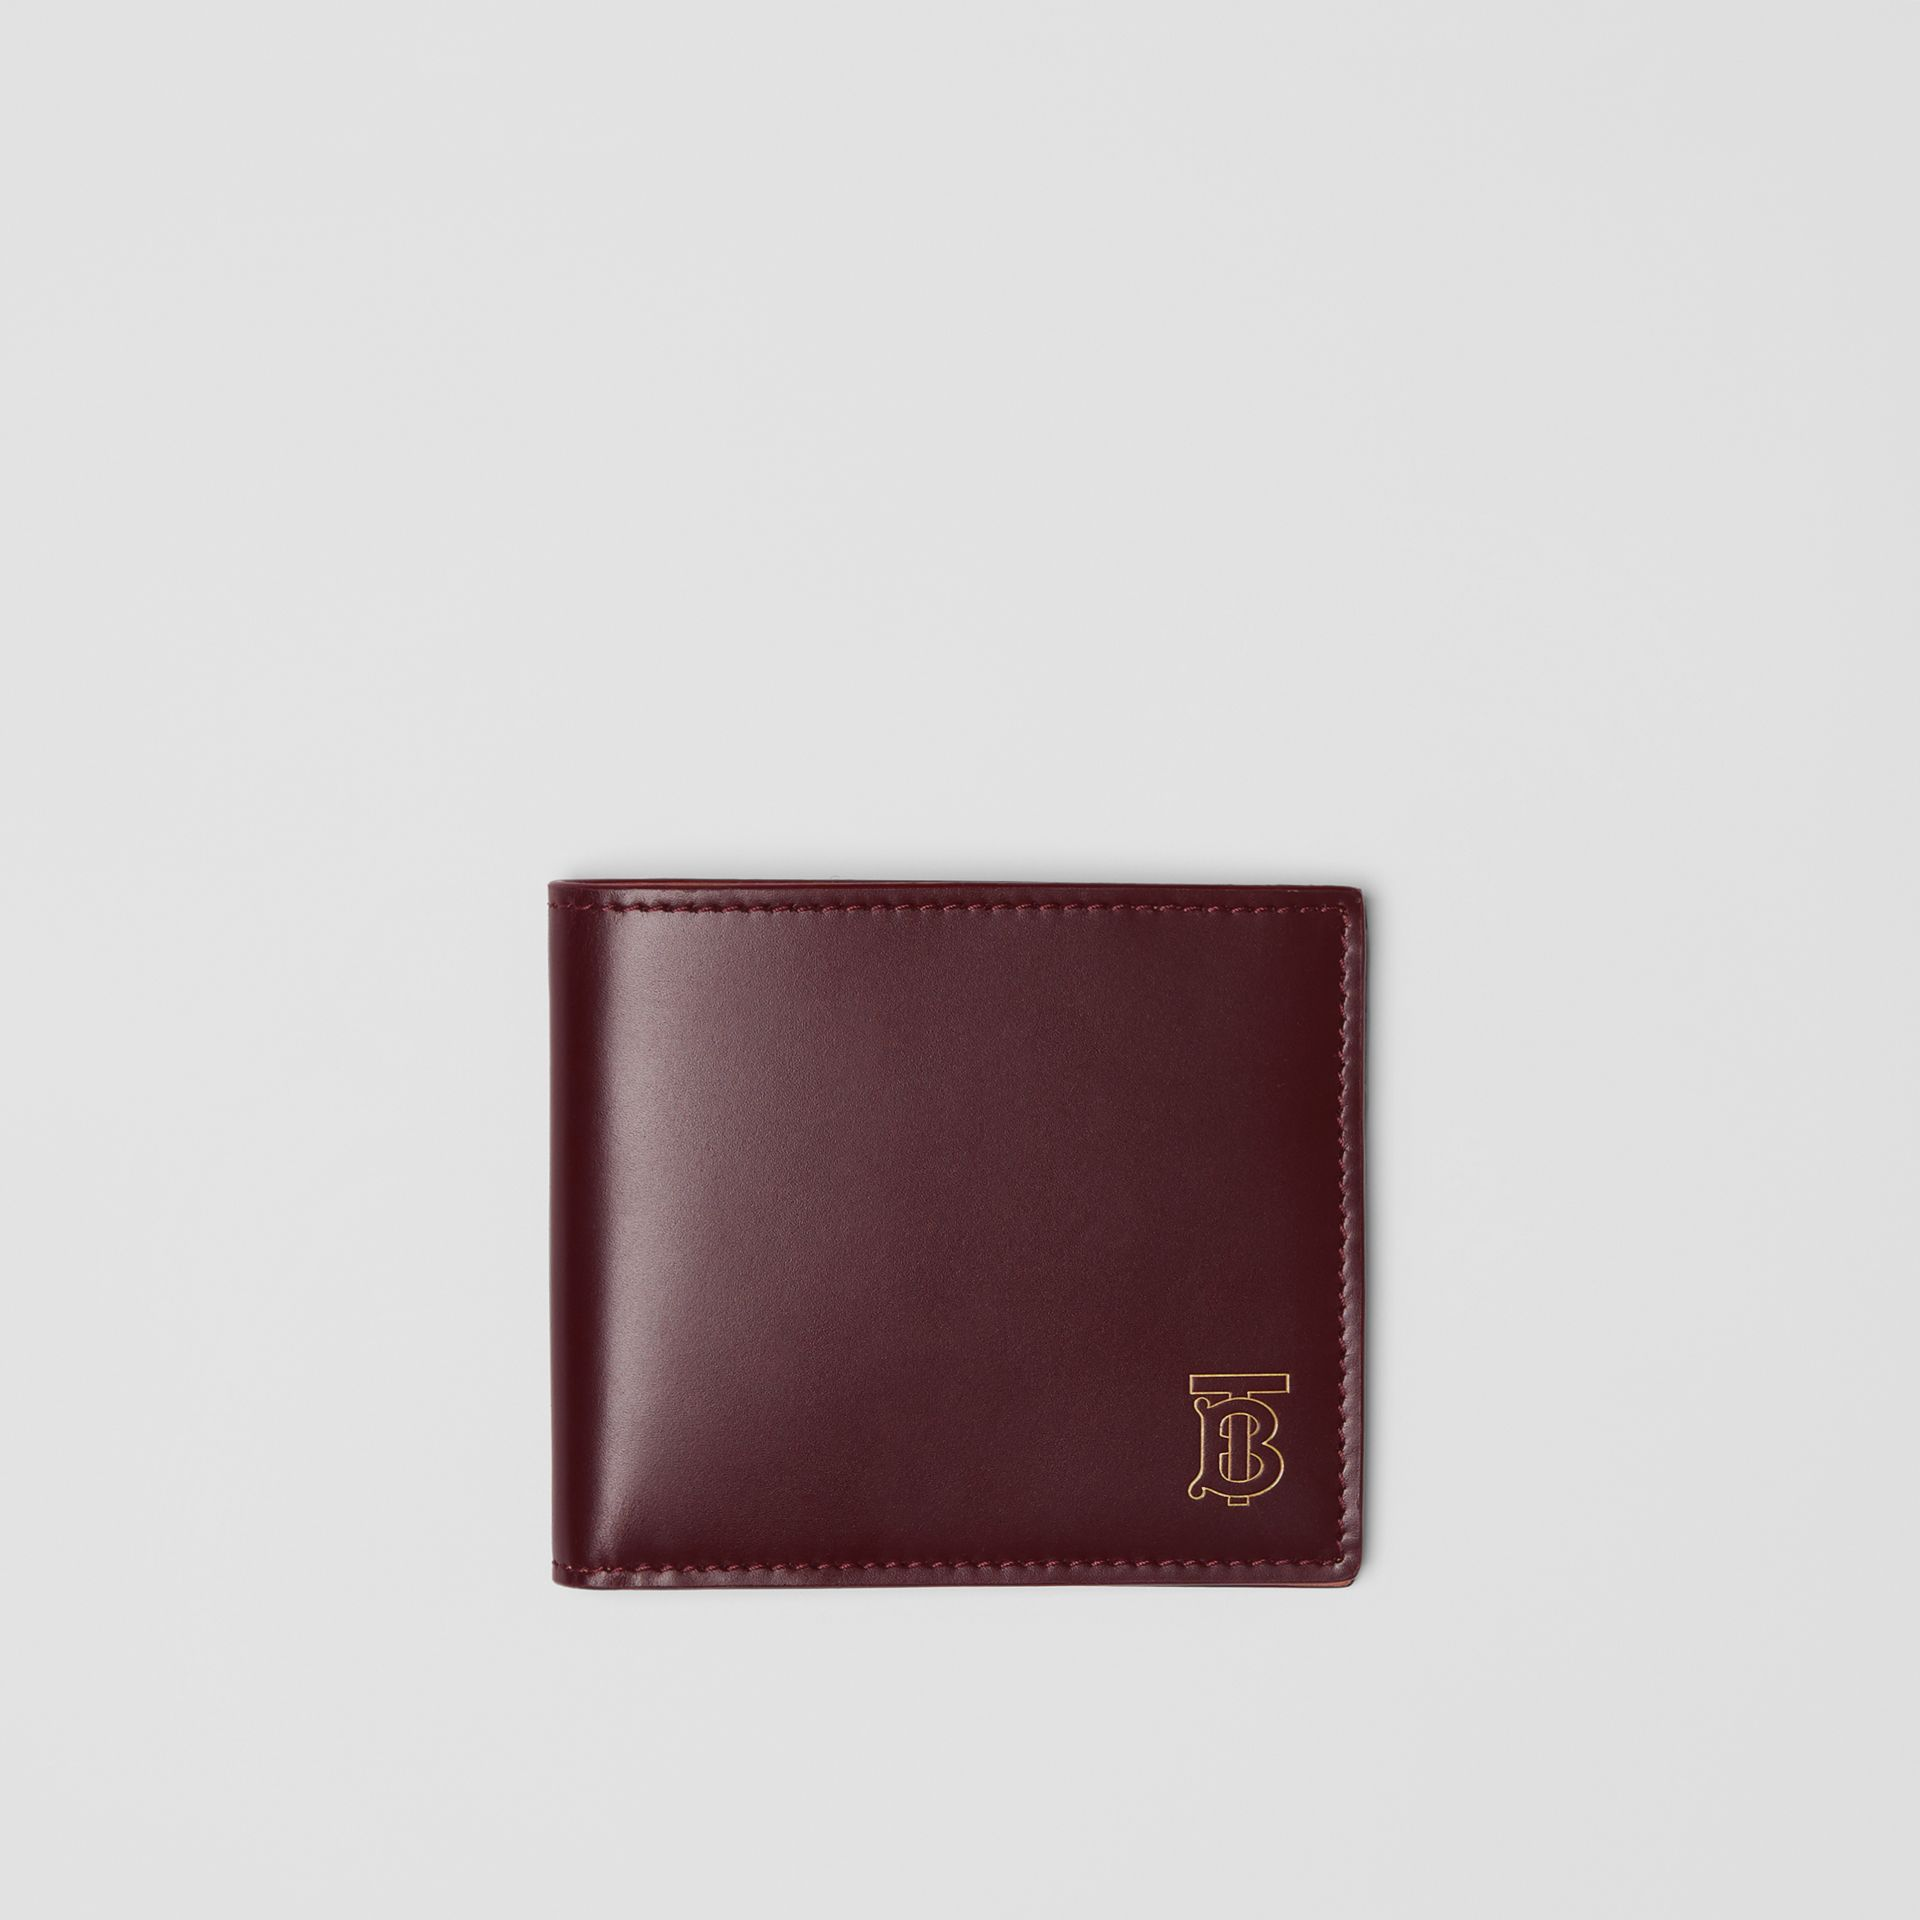 Portefeuille à rabat multidevise en cuir Monogram (Oxblood) | Burberry - photo de la galerie 0